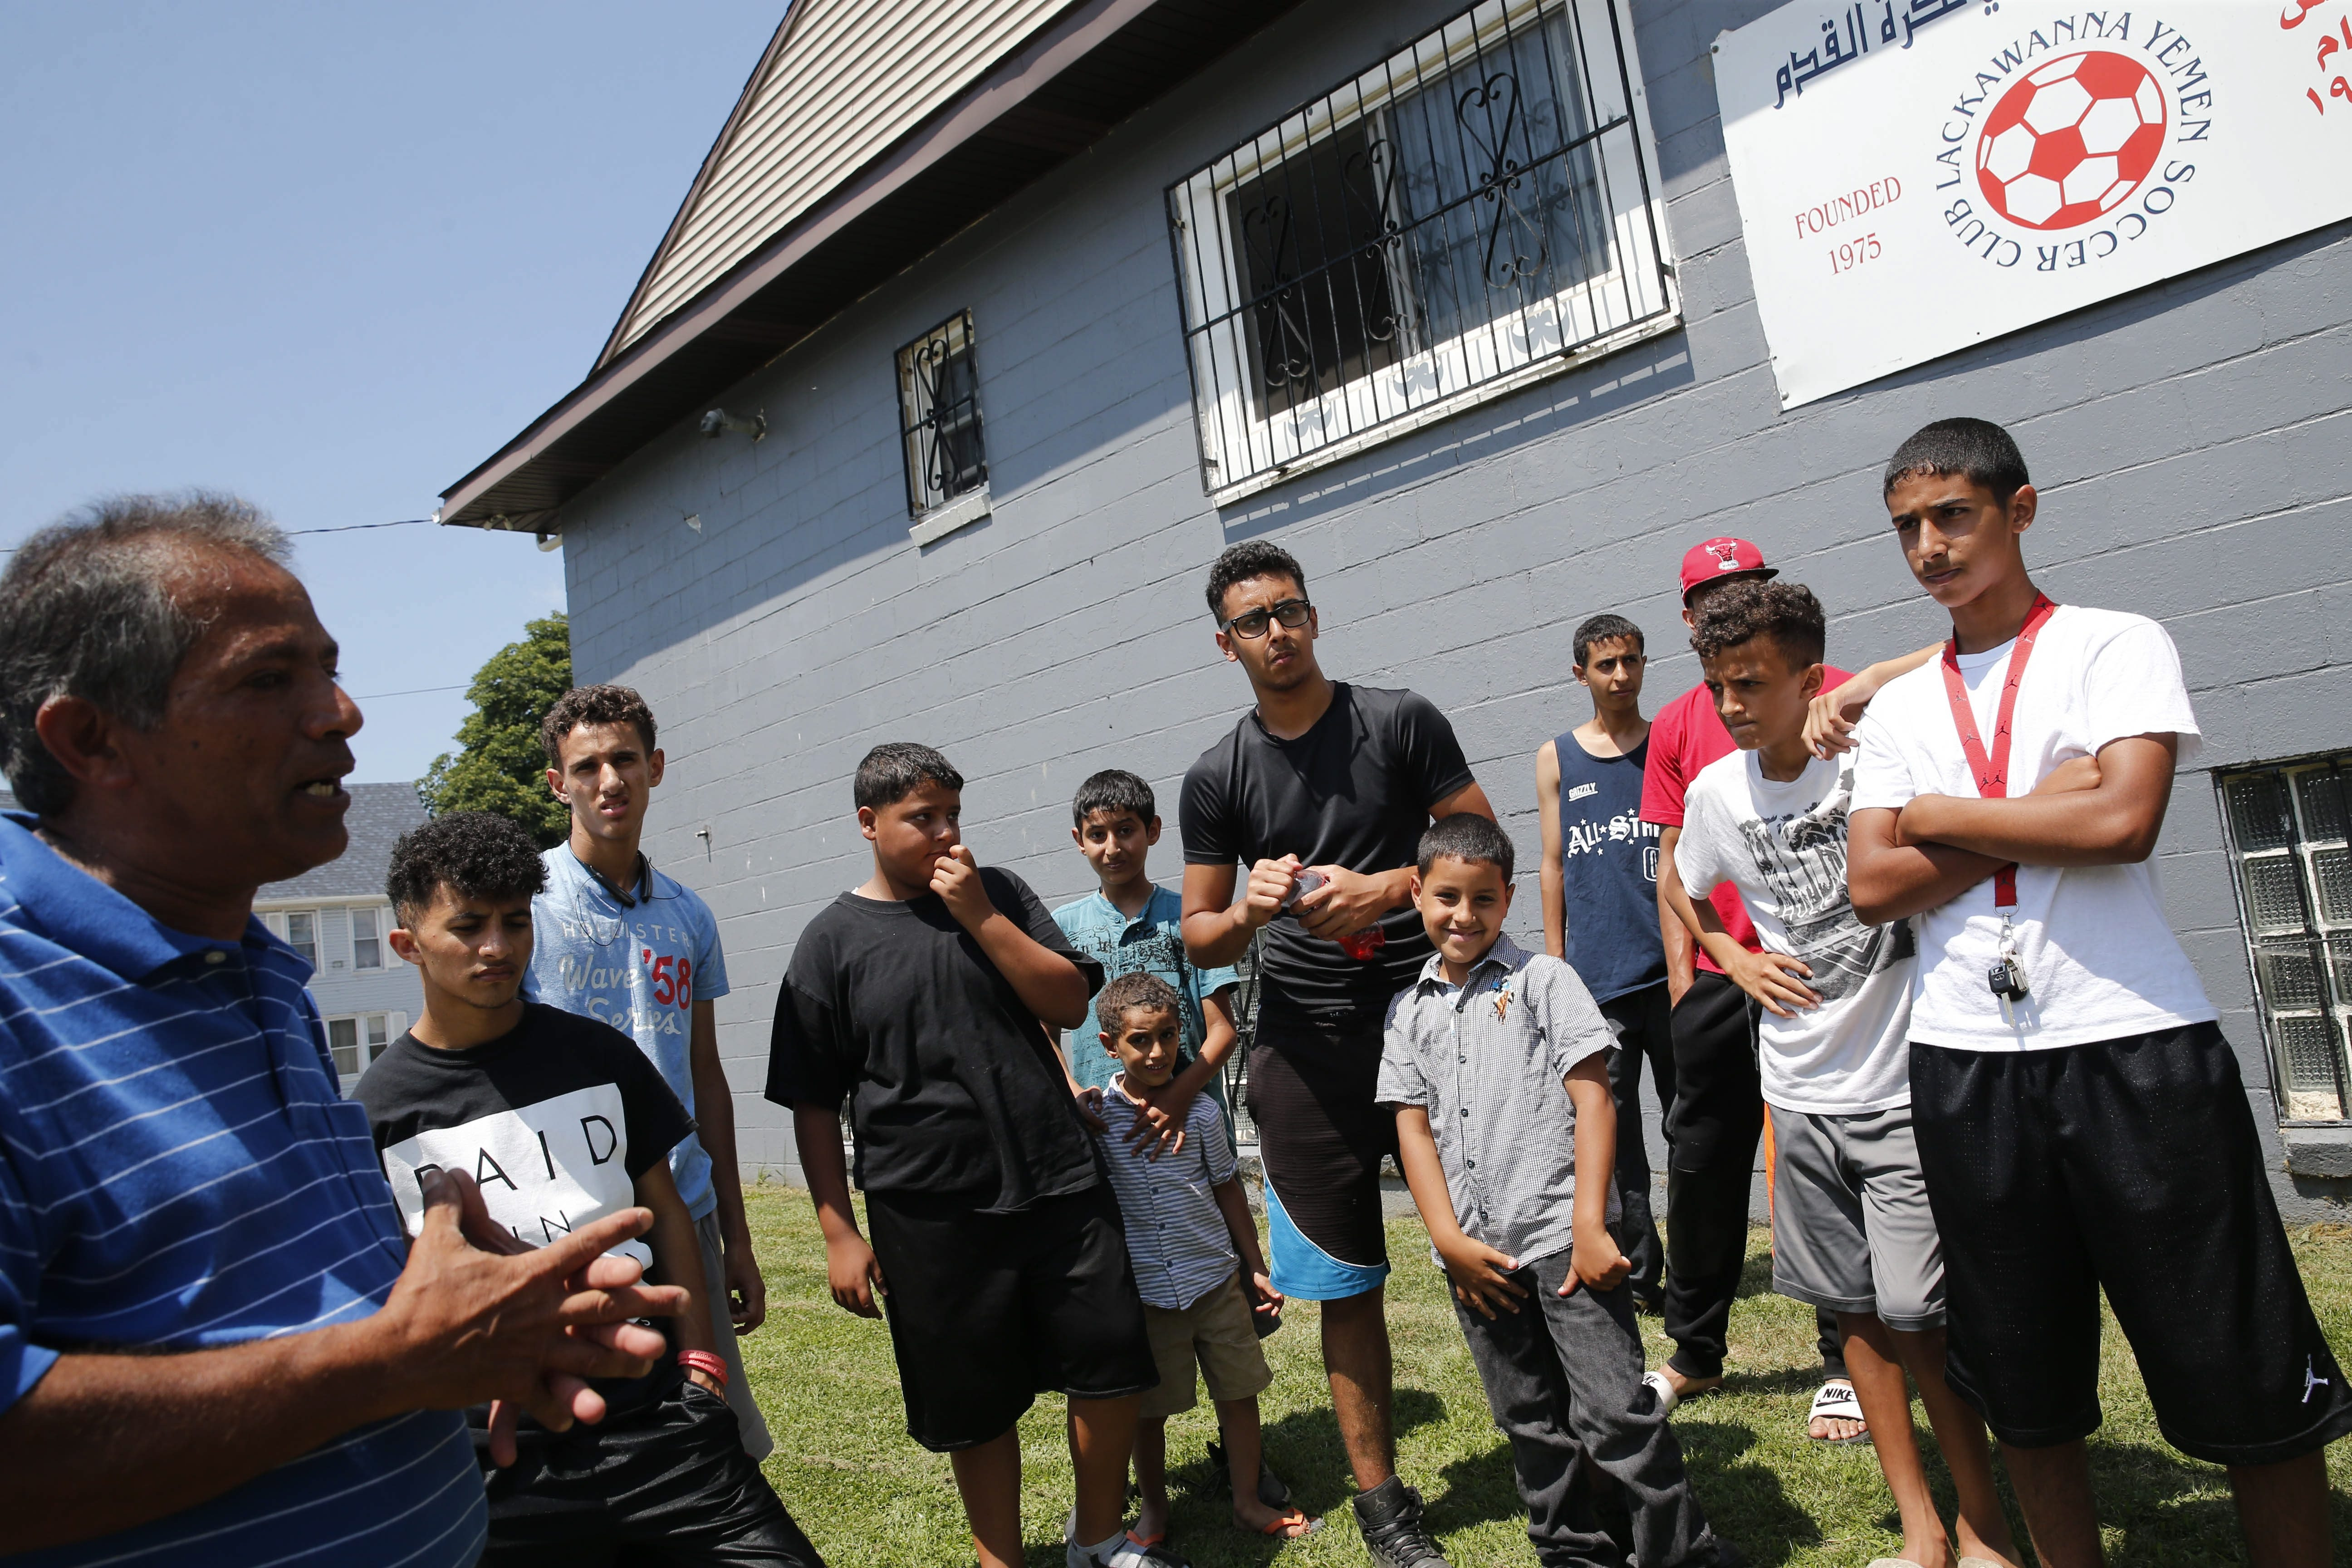 Lackawanna City Councilman Abdulsalam K. Noman, left, talks with young members of Yemen Soccer Club after arrest of Arafat M. Nagi, evoking memories of 2002 raid on Lackawanna Six.